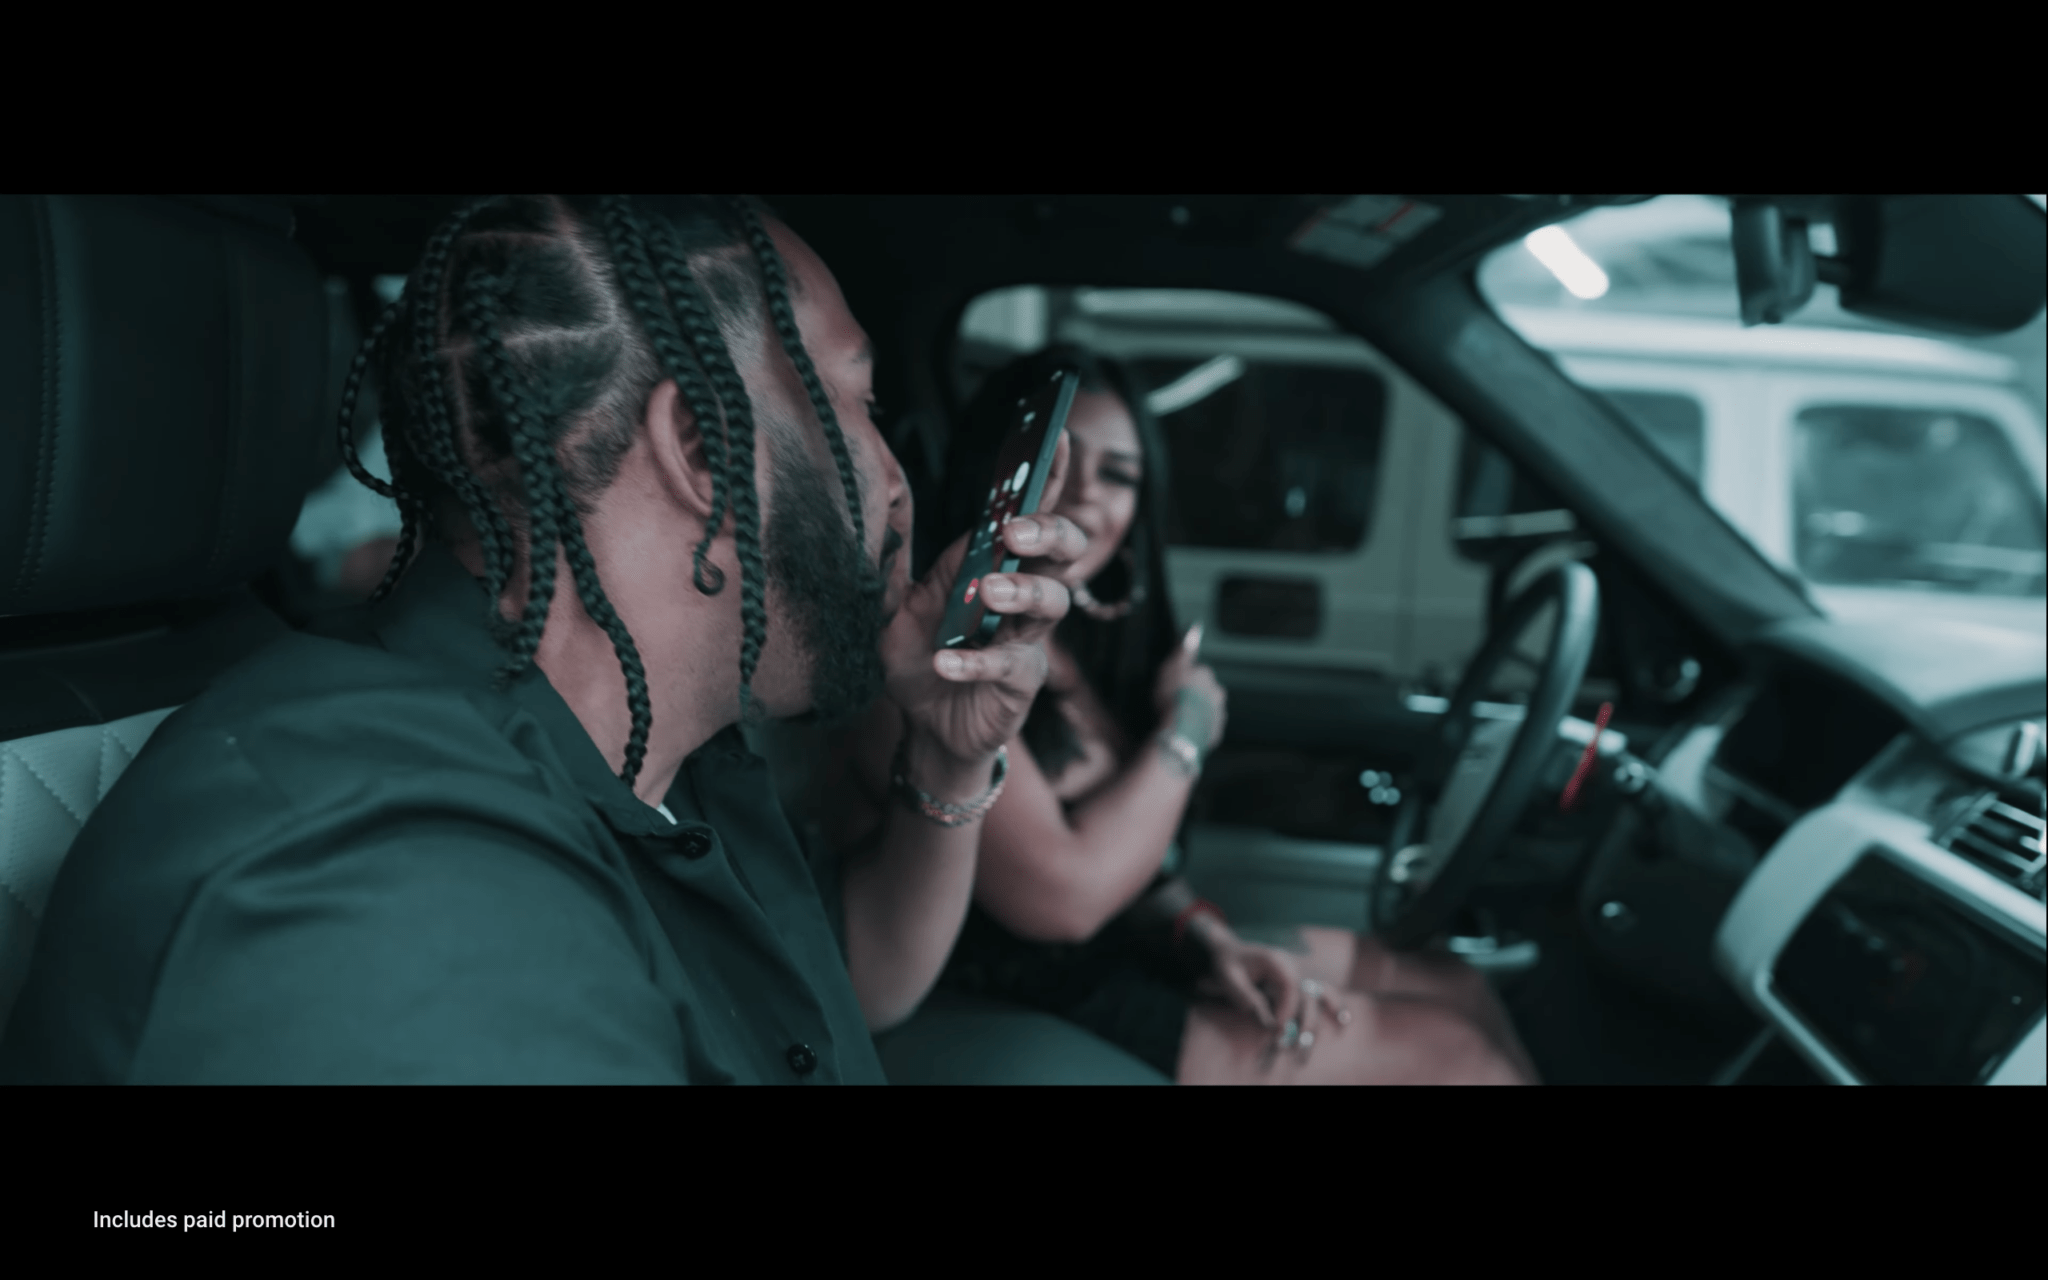 504Yung Music Video Direction